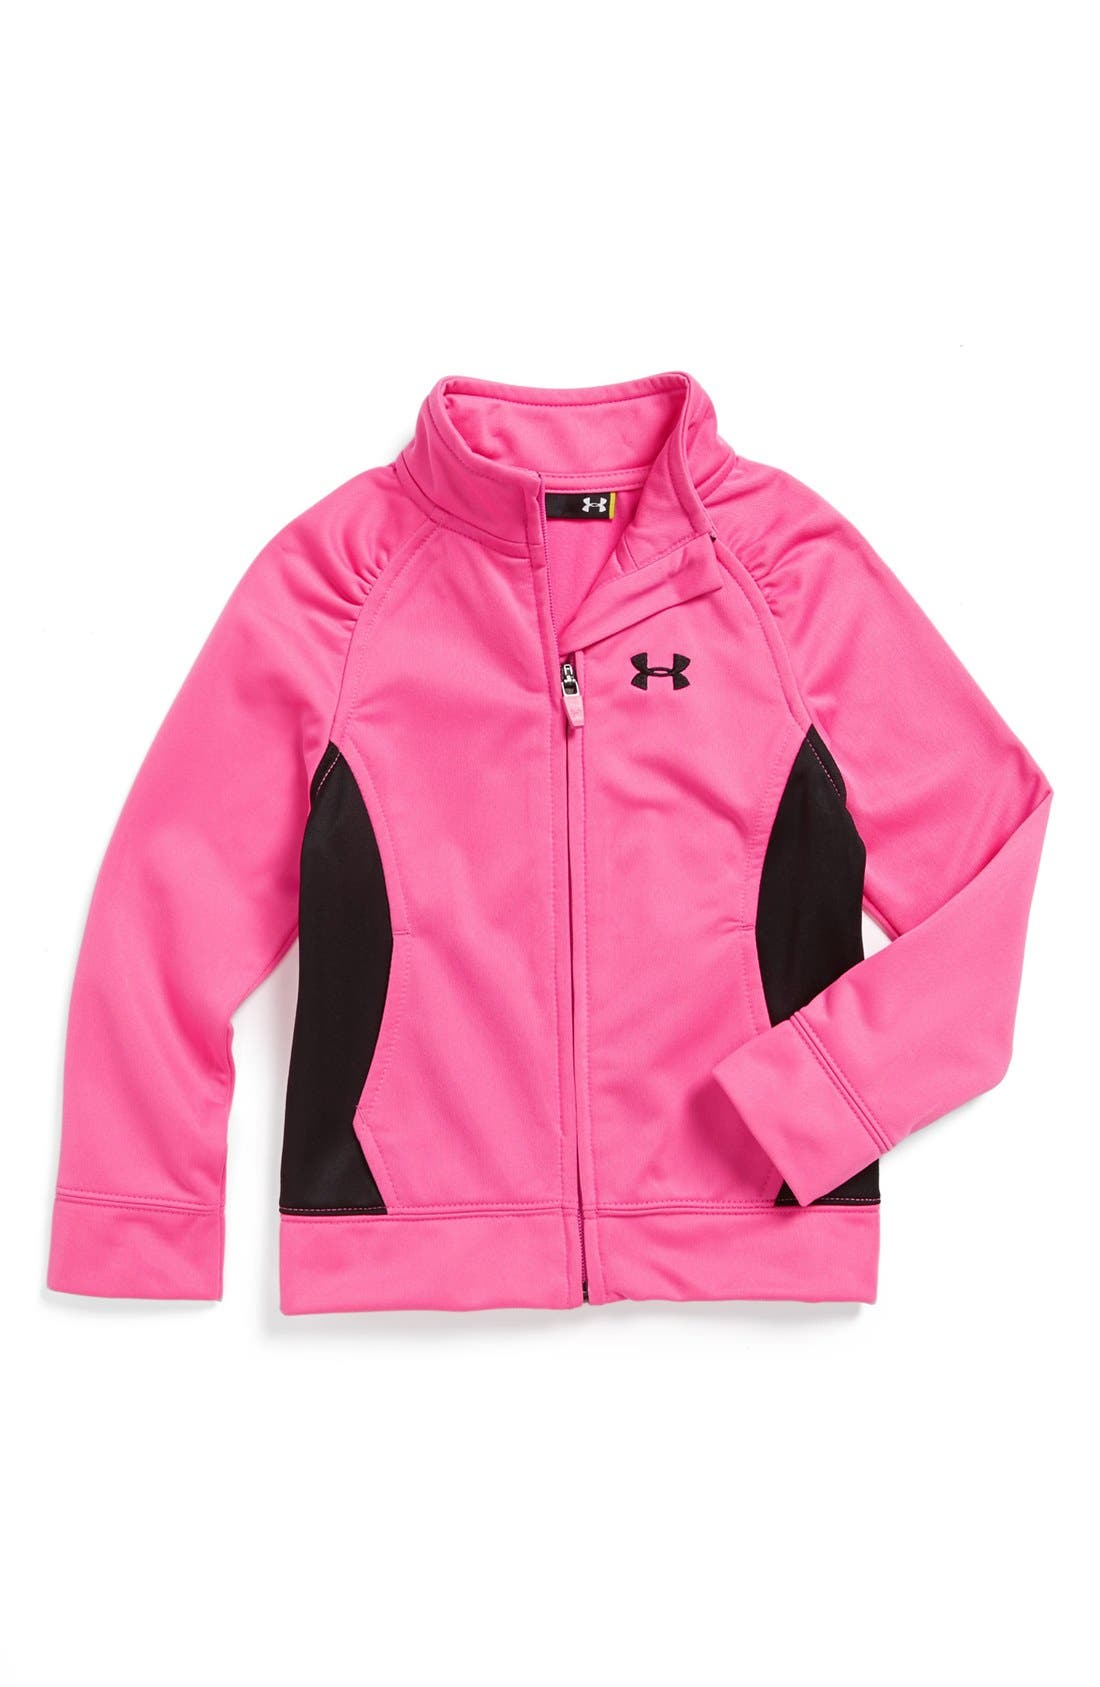 Alternate Image 1 Selected - Under Armour 'Time Out' Track Jacket (Toddler Girls)